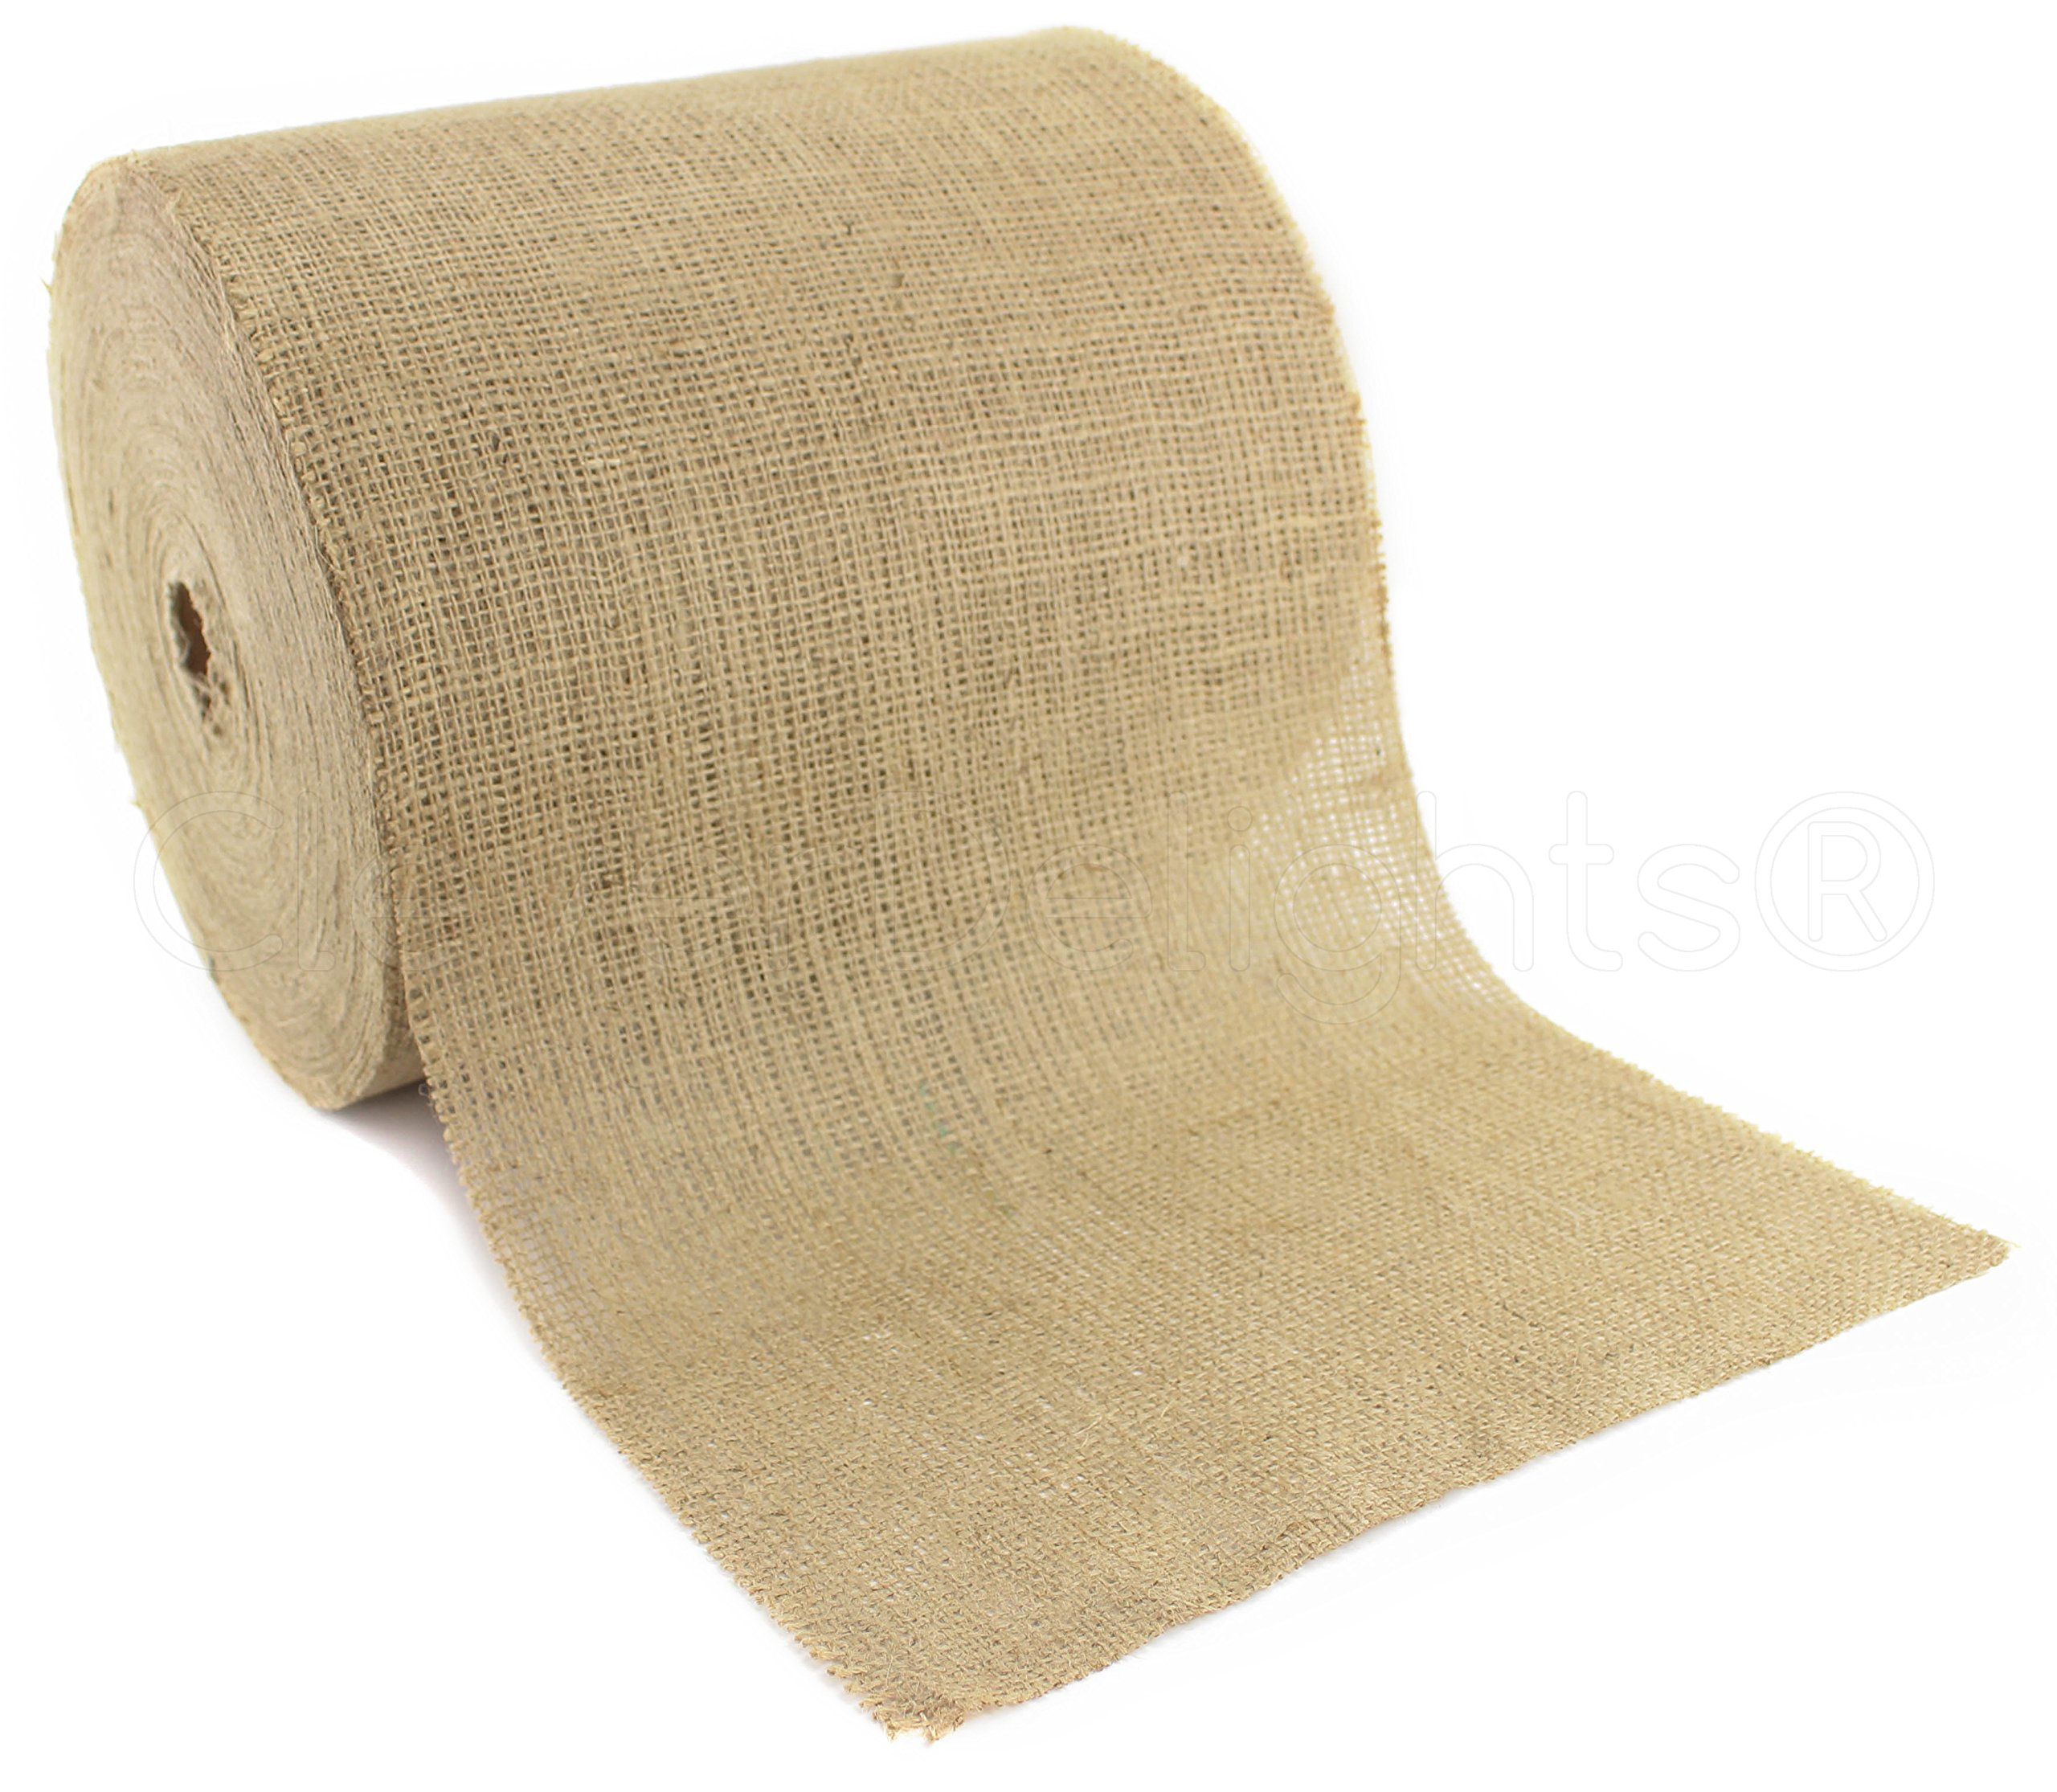 CleverDelights 12'' Natural Burlap Roll - 100 Yards - Eco-Friendly Jute Burlap Fabric - 12 Inch